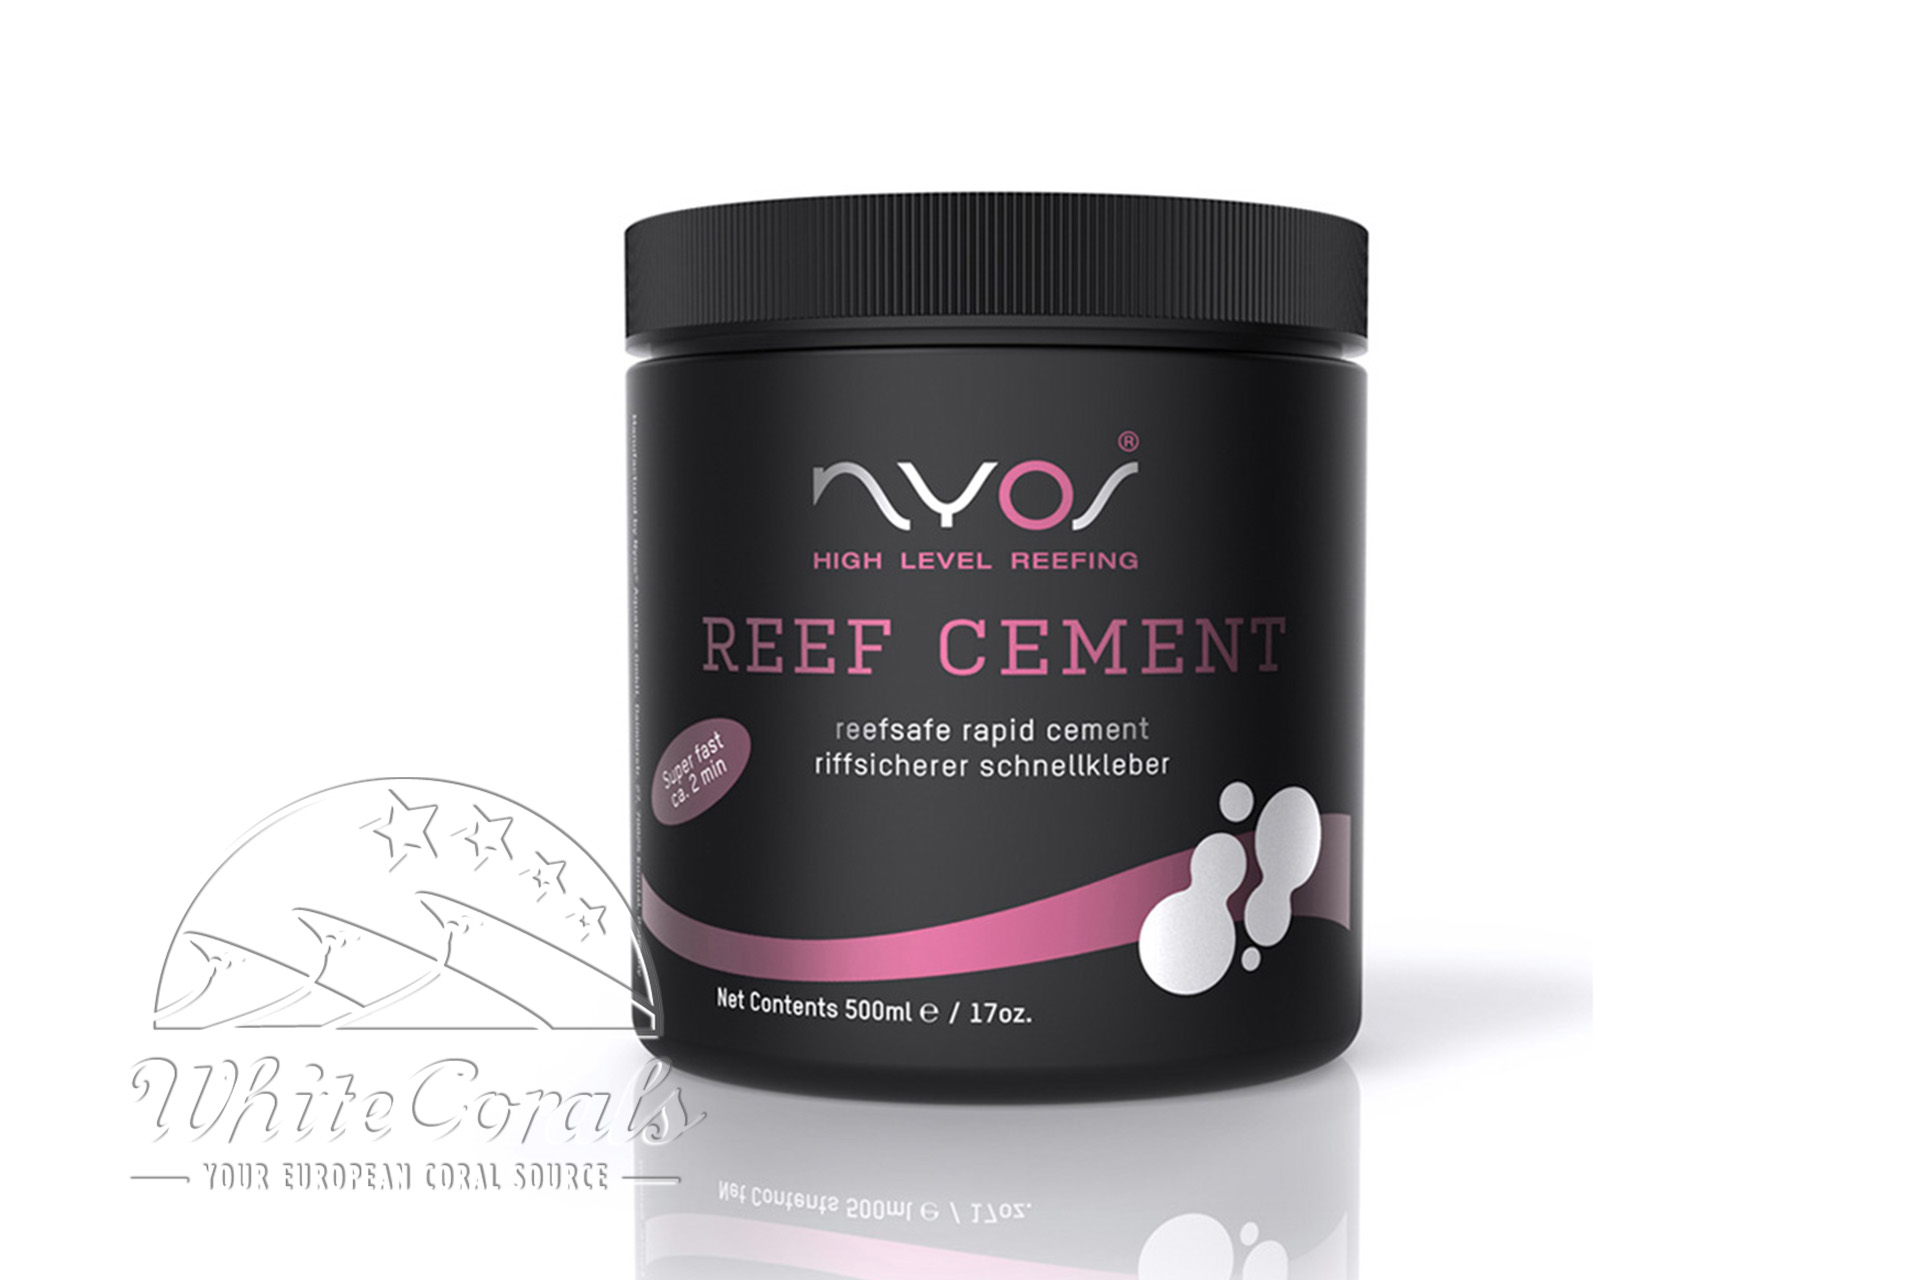 Nyos Reef Cement 500 ml cement glue